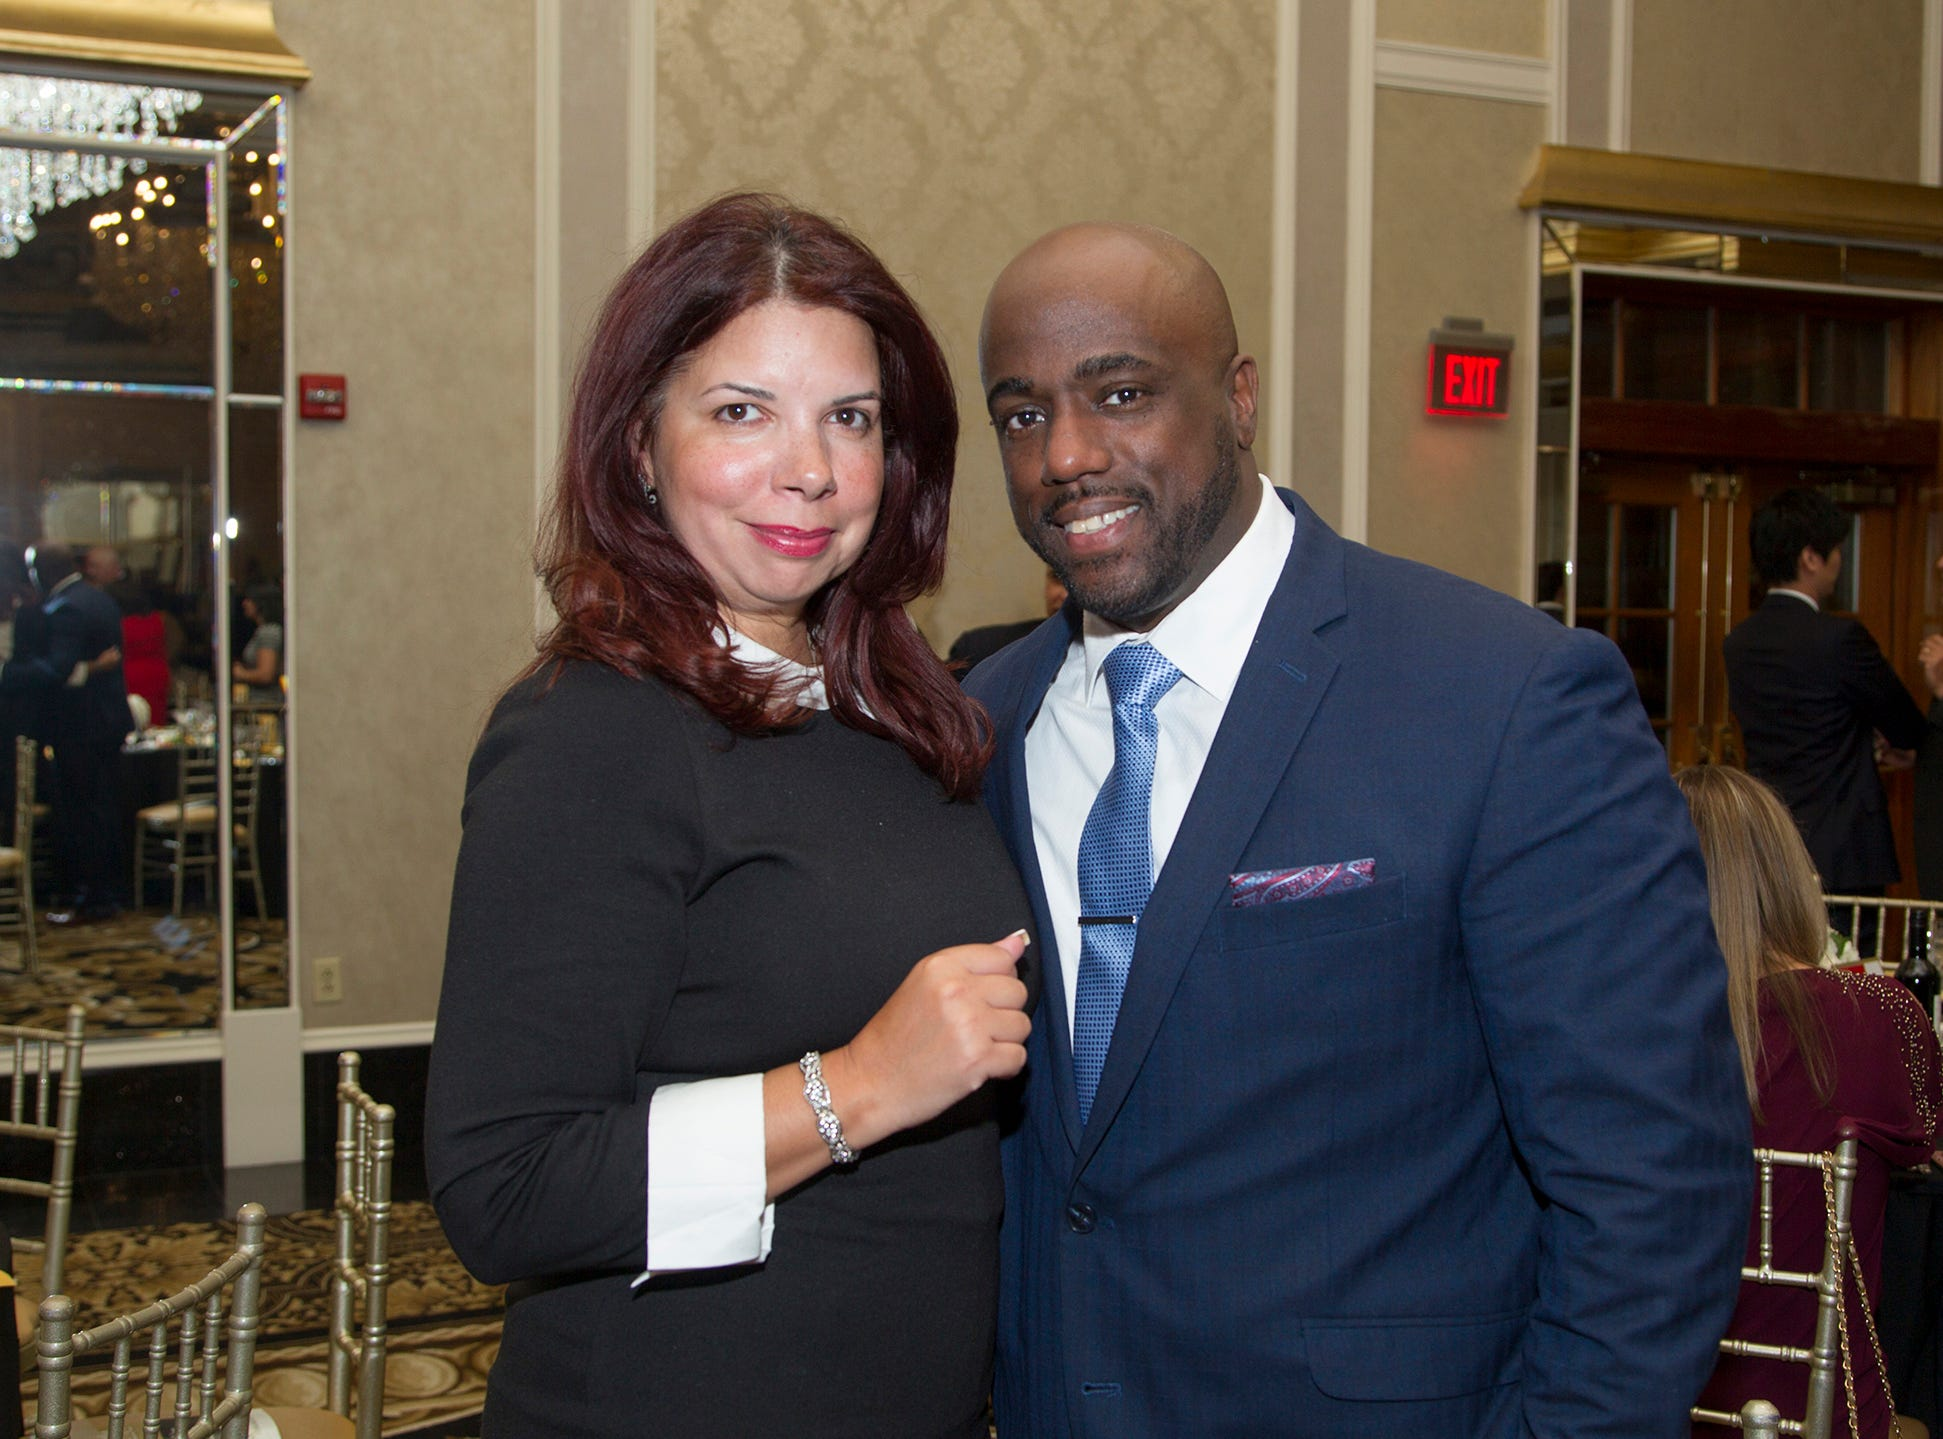 Jeanette McDonald, David Elliot. Christian Health Care Center held its ' A Celebration of Excellence' gala at the Venetian in Garfield.  10/17/2018